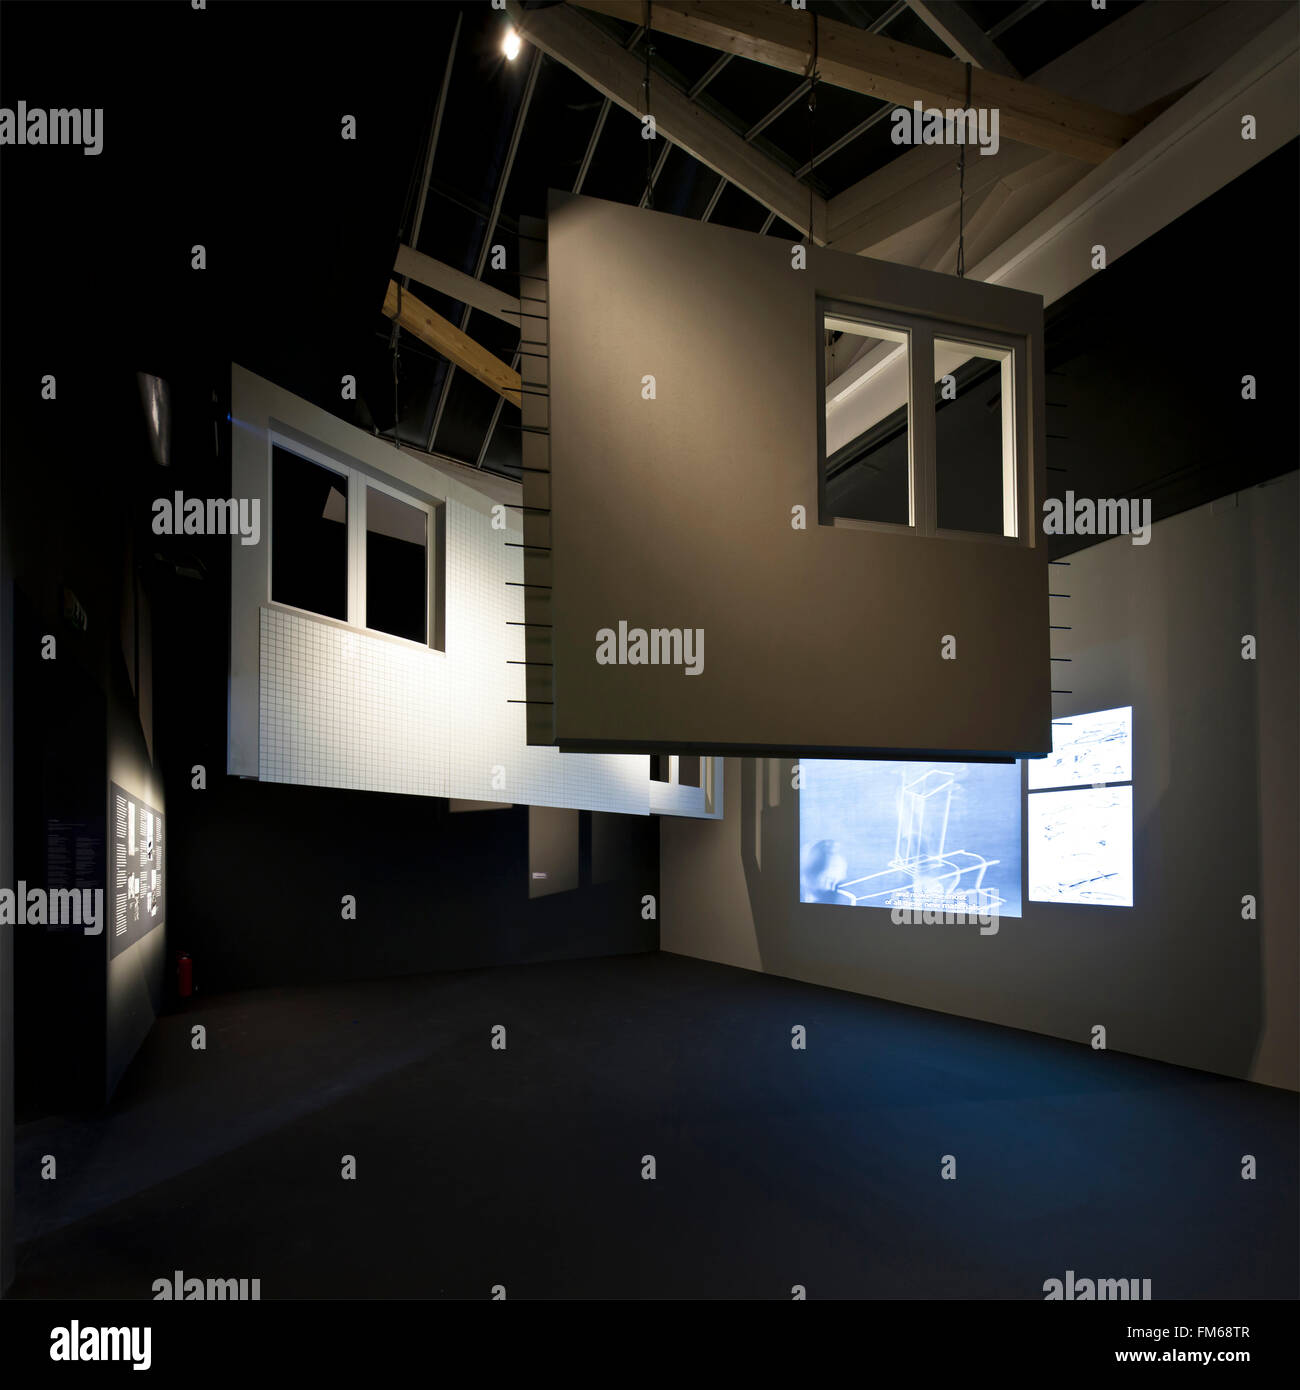 An interior view of the 2014 Venice Biennale - French National Pavilion. - Stock Image